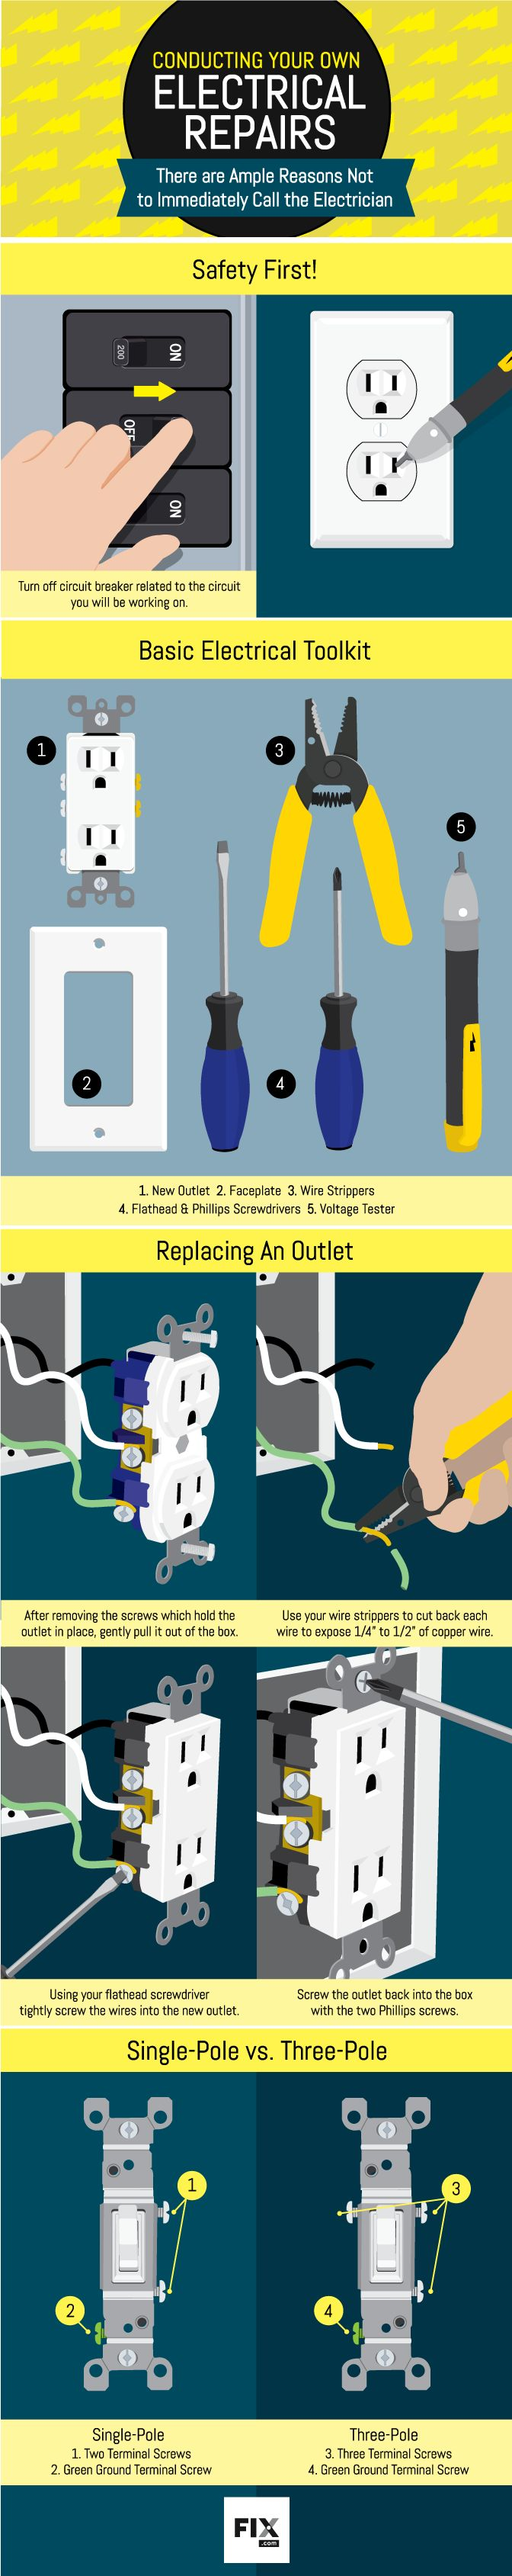 185 best Electrical Wiring images on Pinterest | Electrical outlets ...